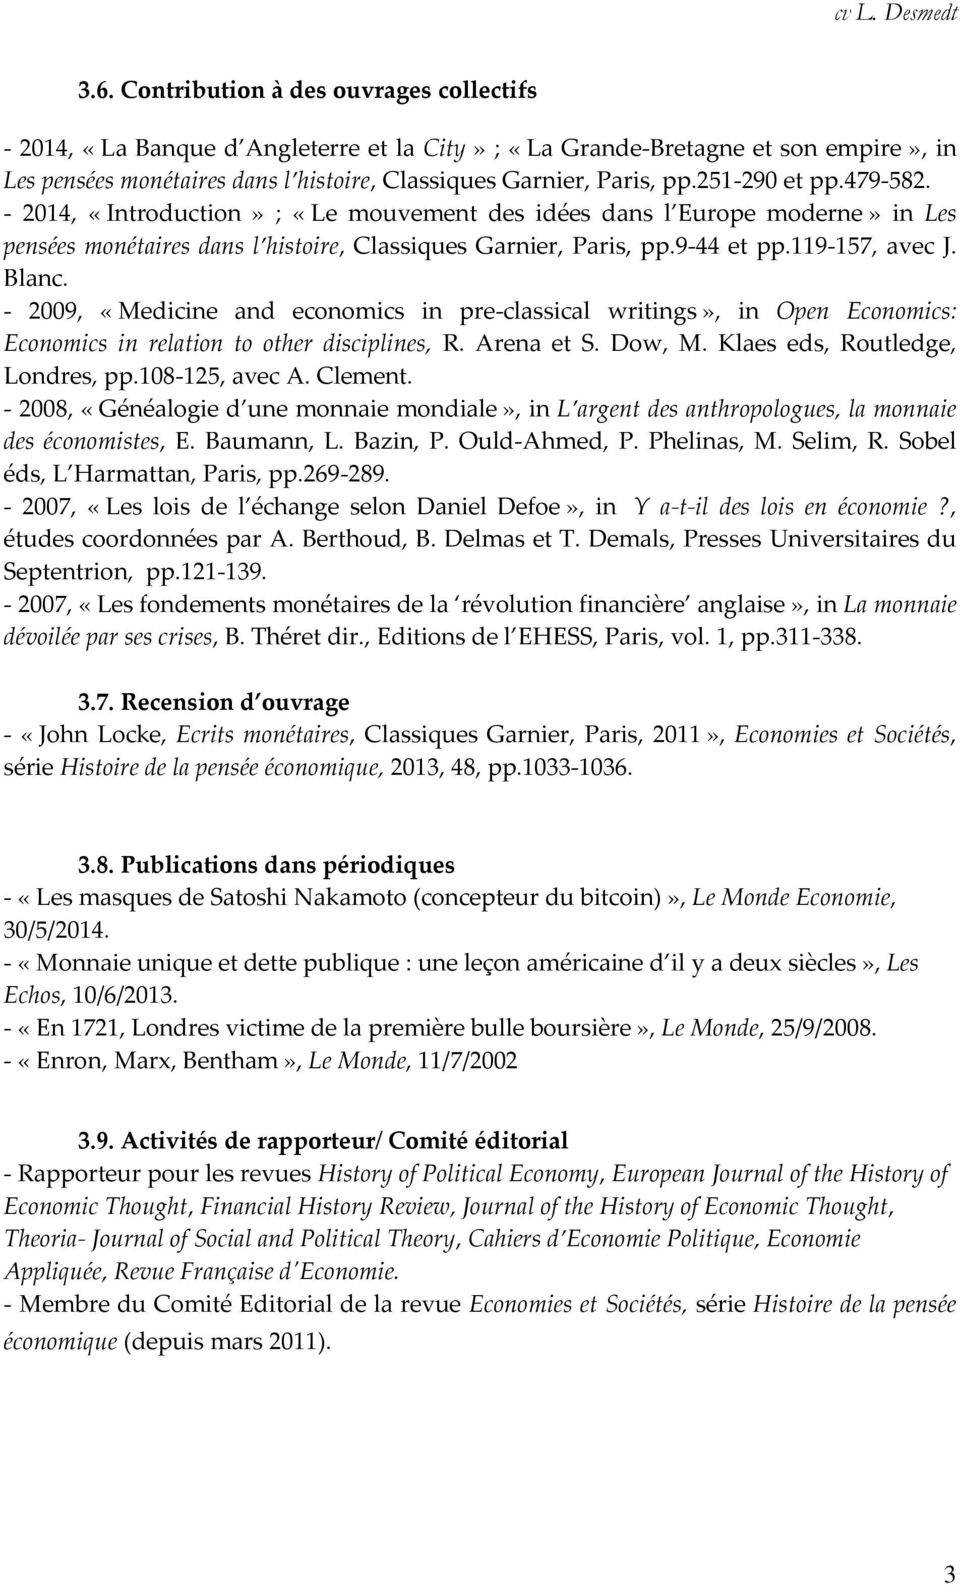 Blanc. - 2009, «Medicine and economics in pre-classical writings», in Open Economics: Economics in relation to other disciplines, R. Arena et S. Dow, M. Klaes eds, Routledge, Londres, pp.